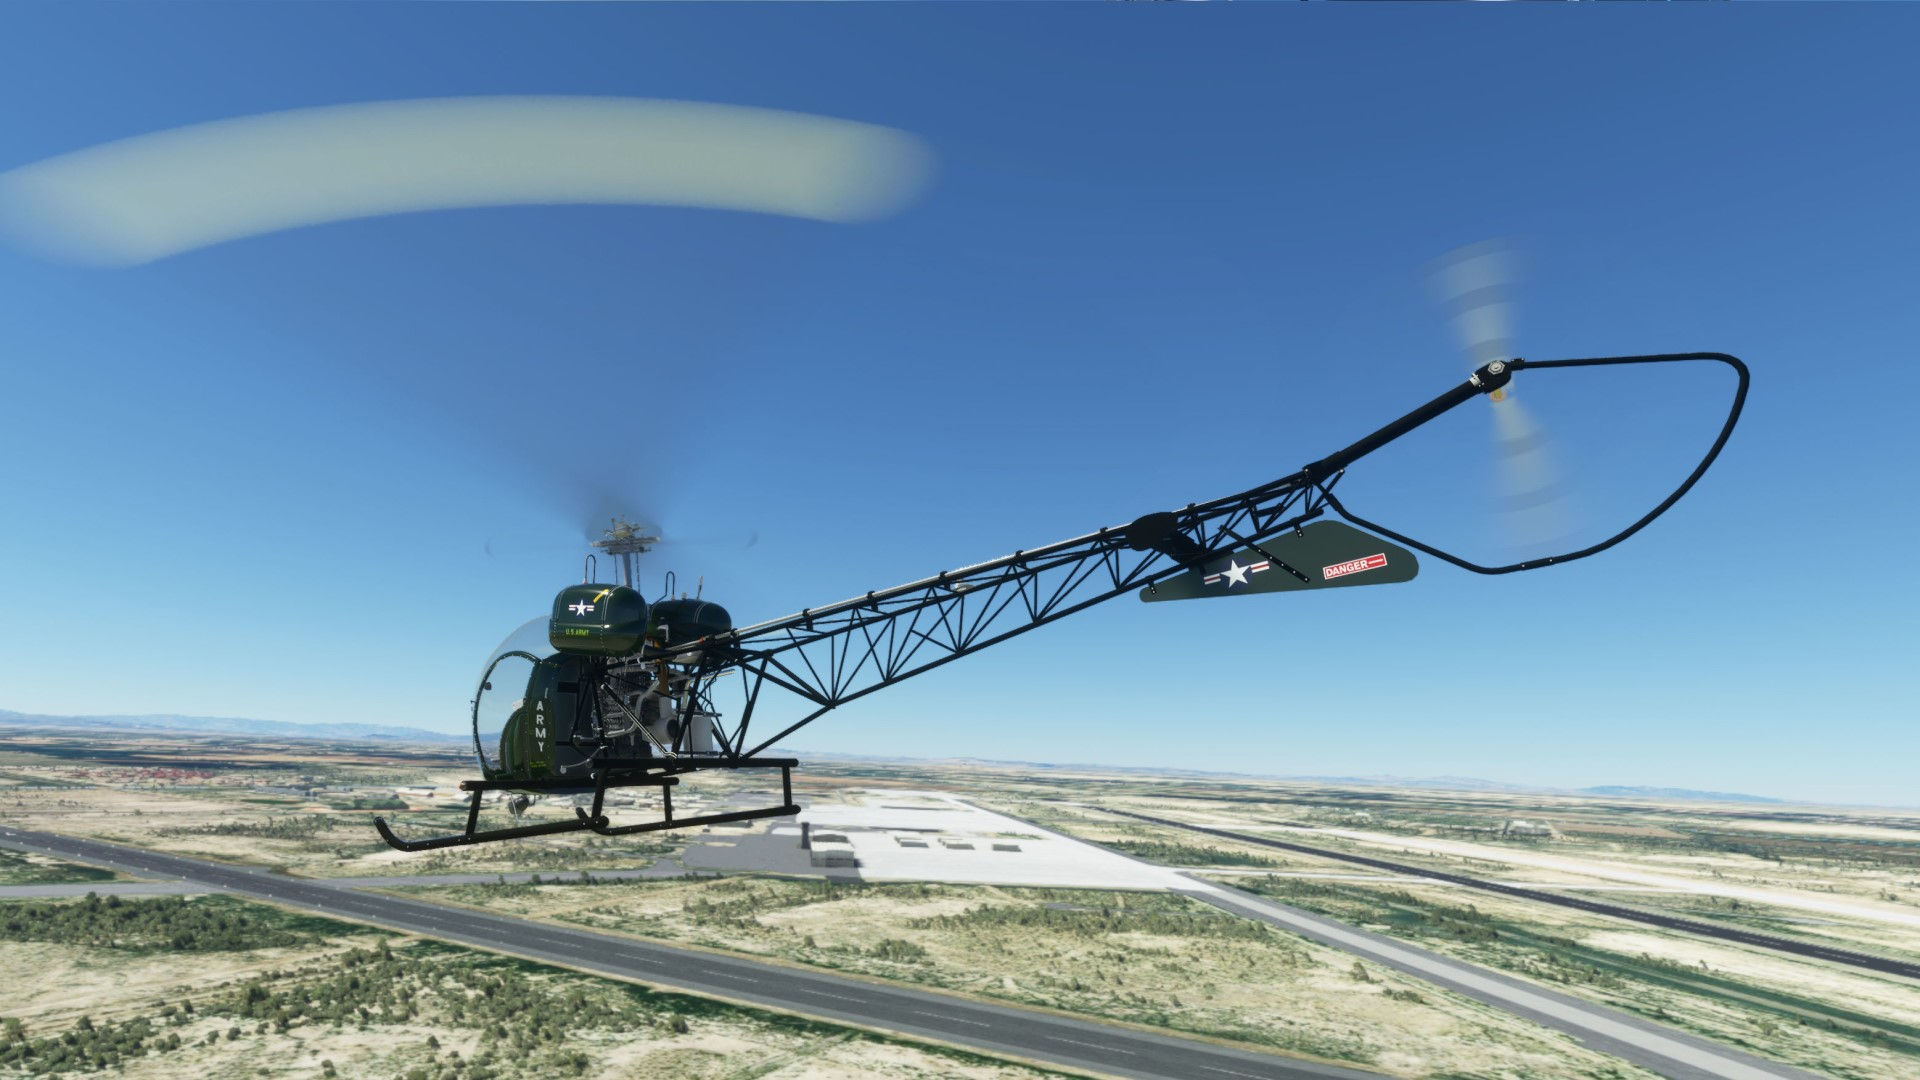 Flight Simulator now has a working helicopter add-on